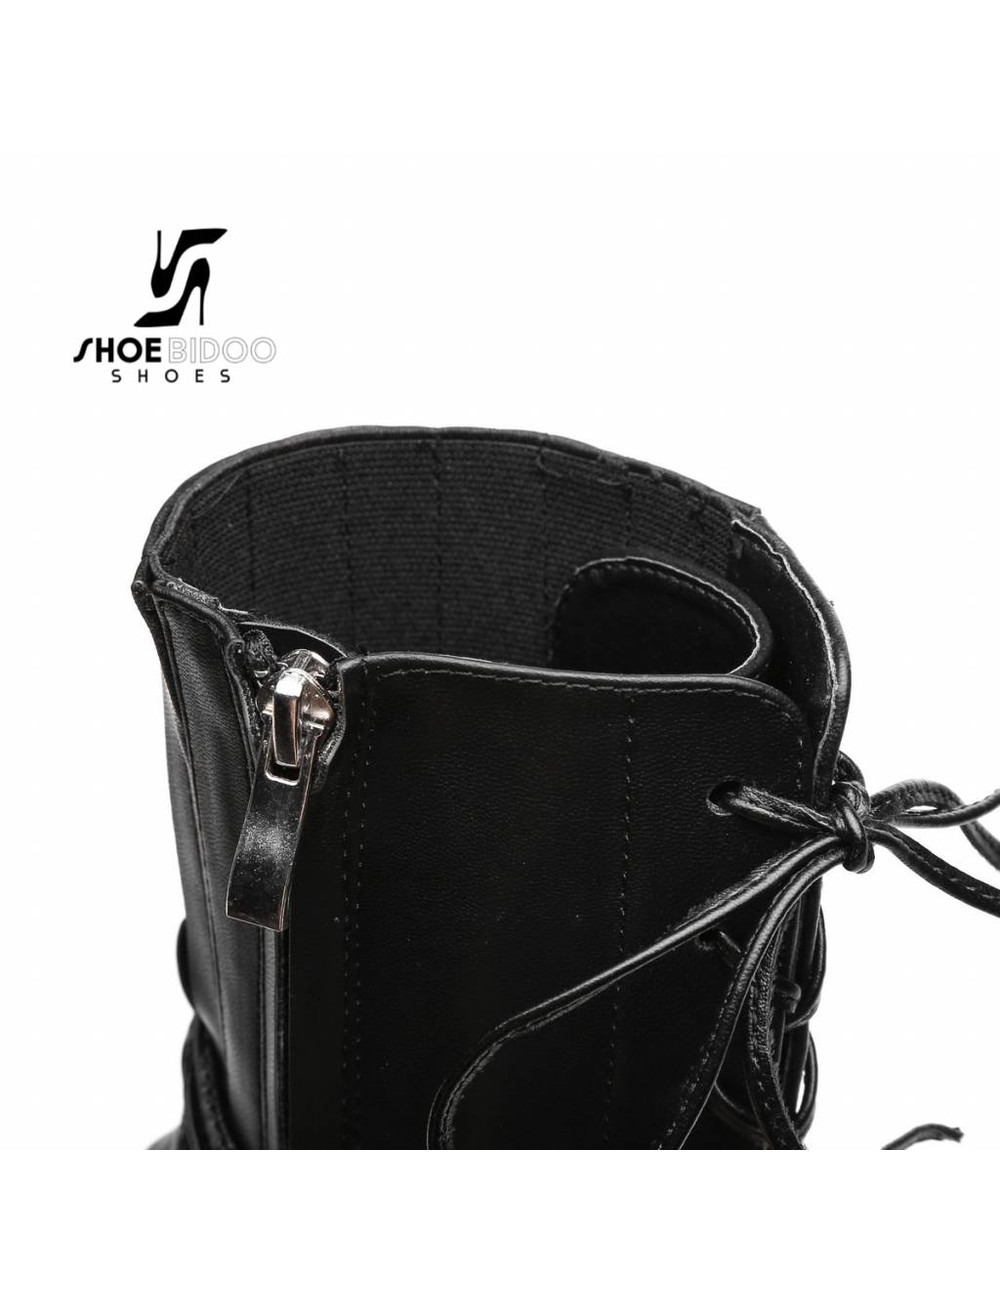 Giaro Black ankle boots with ultra high silver metal heels and lacing